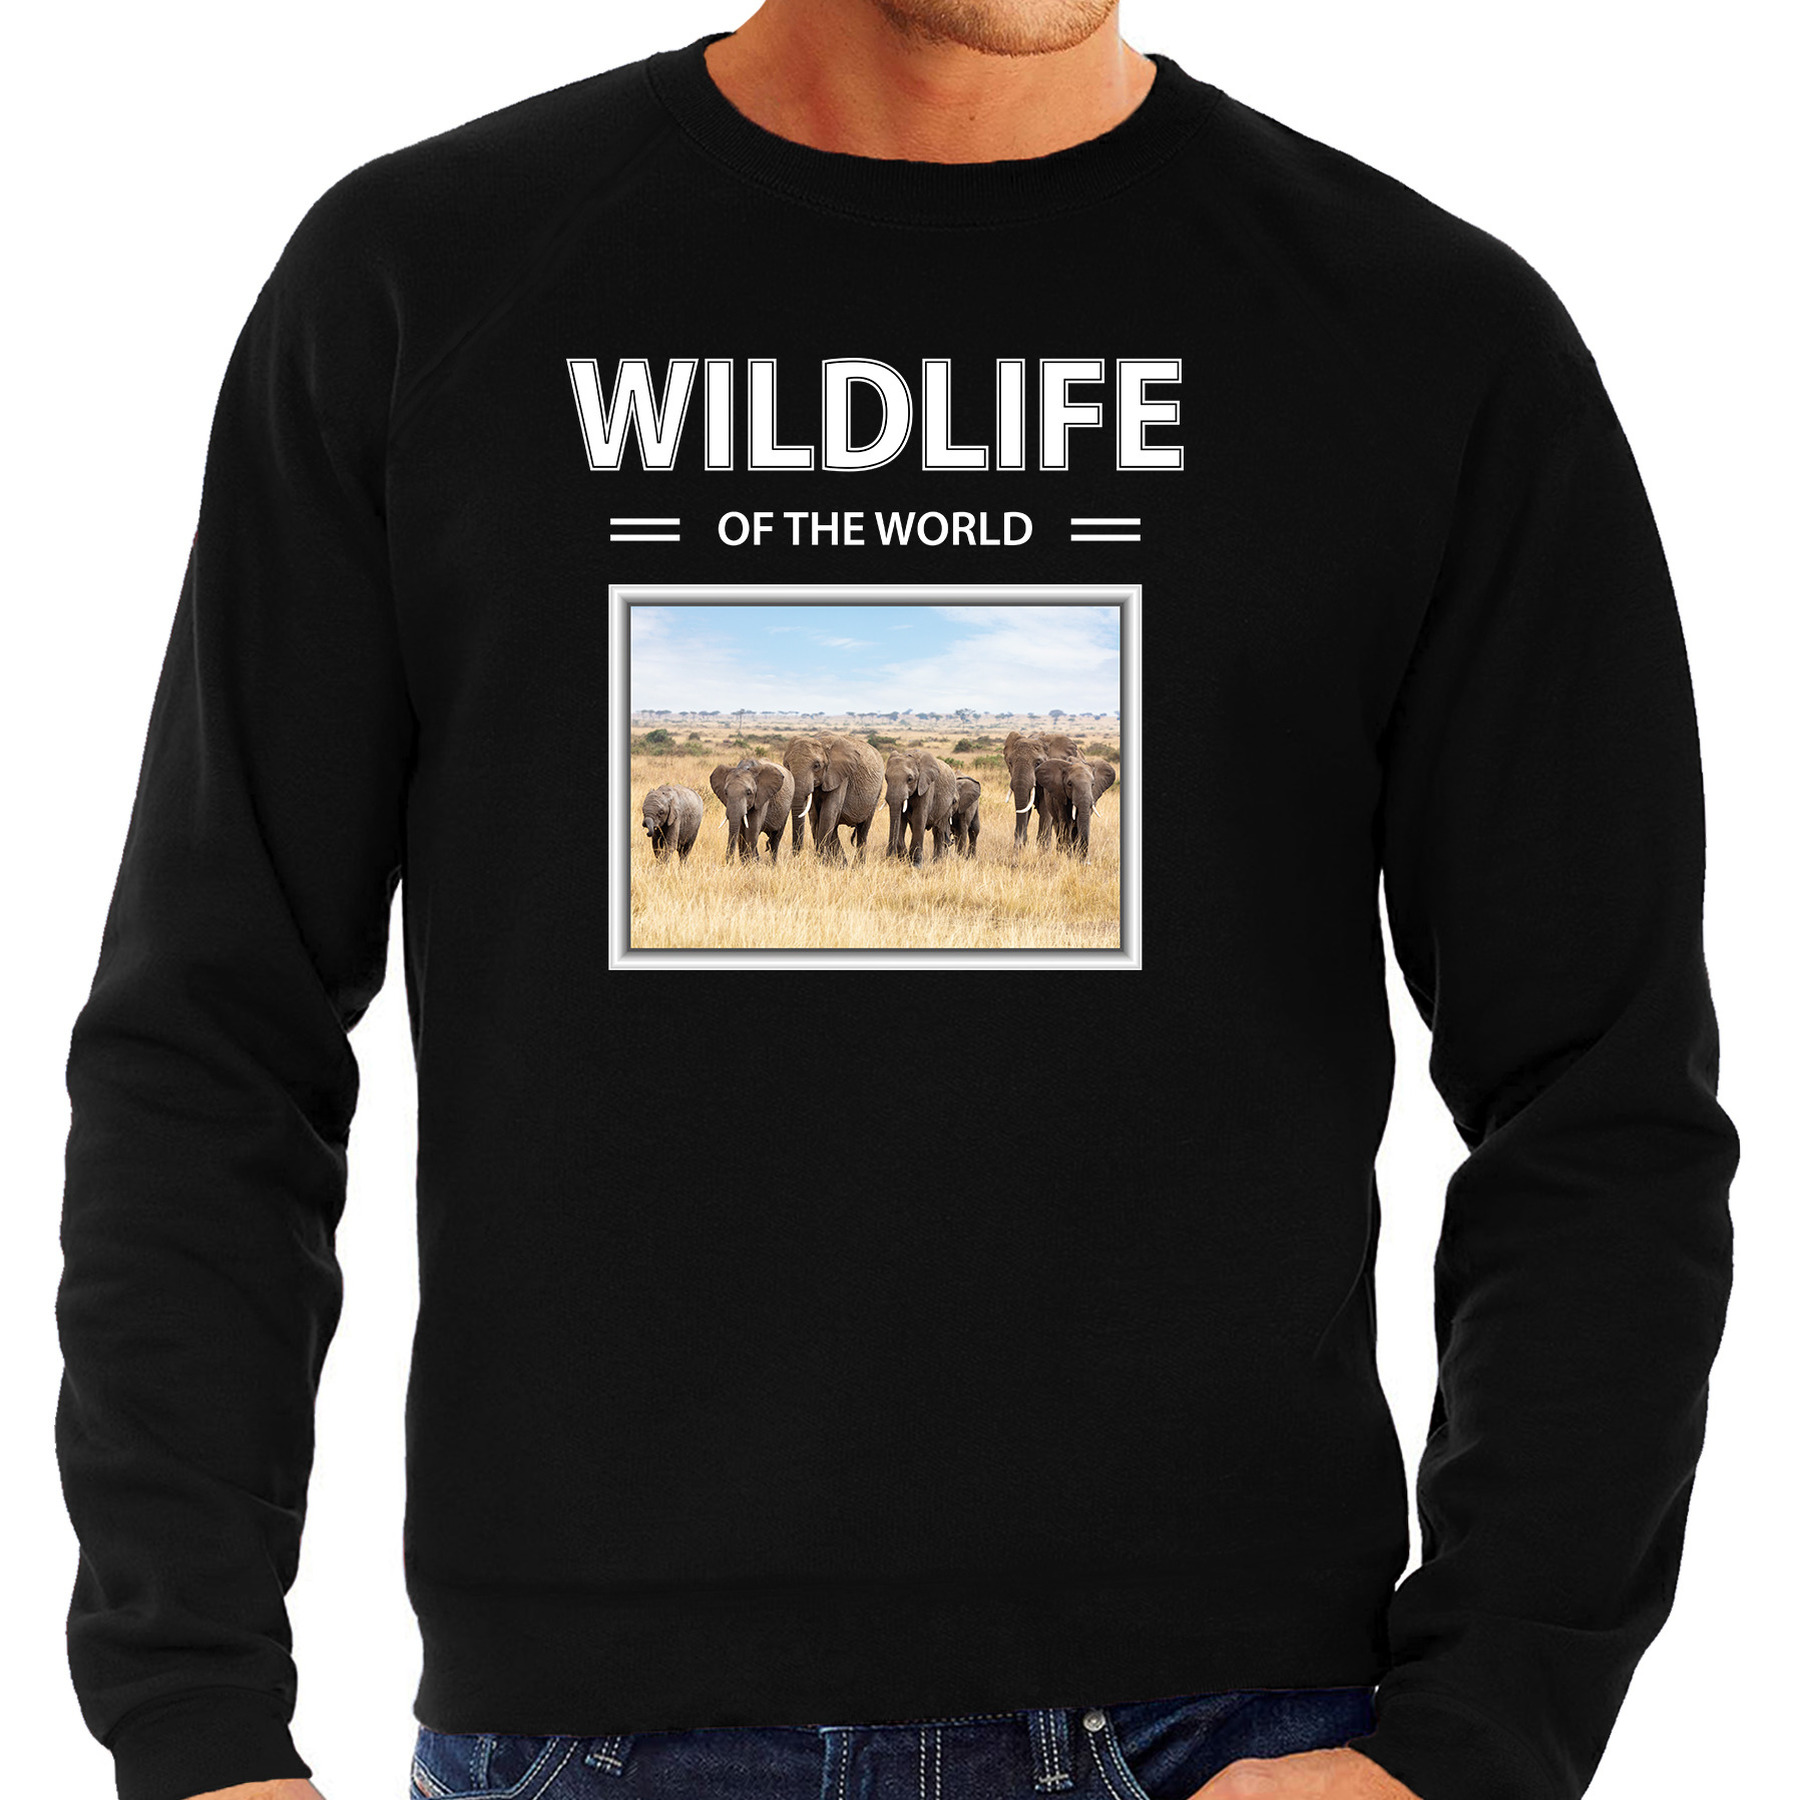 Olifant foto sweater zwart voor heren - wildlife of the world cadeau trui Olifanten liefhebber